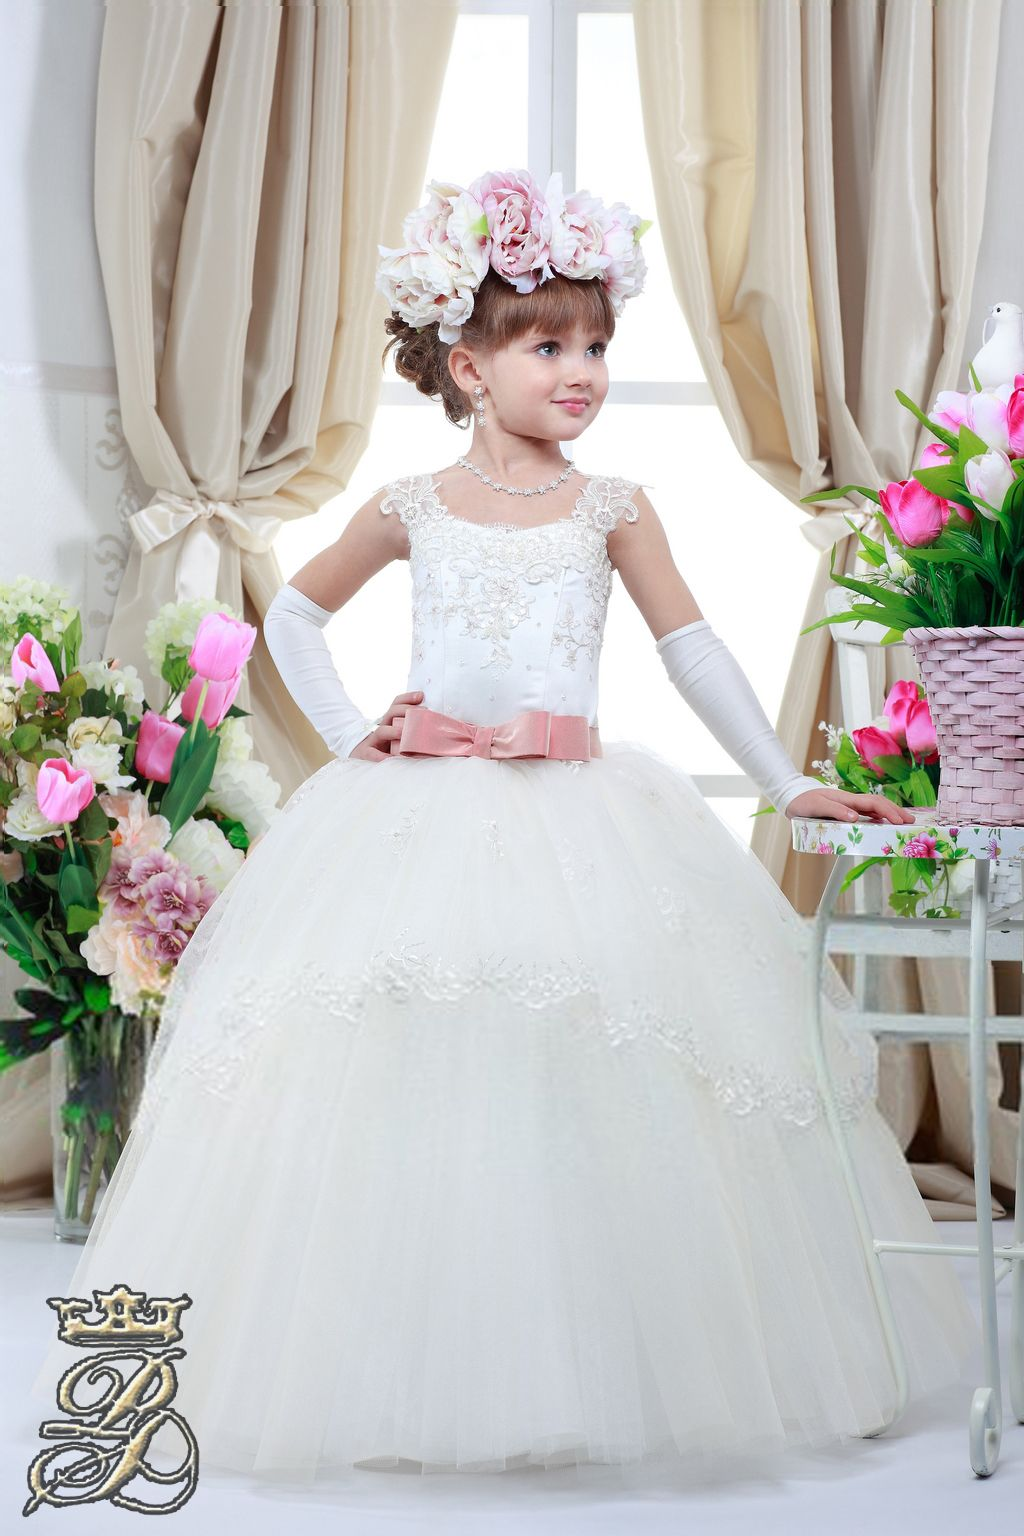 3e1d57f6ae352 Gorgeous dress for your little princess! Its features include lace bodice  with floral applique, colored satin ribbon, layered tulle skirt, beautiful  satin ...